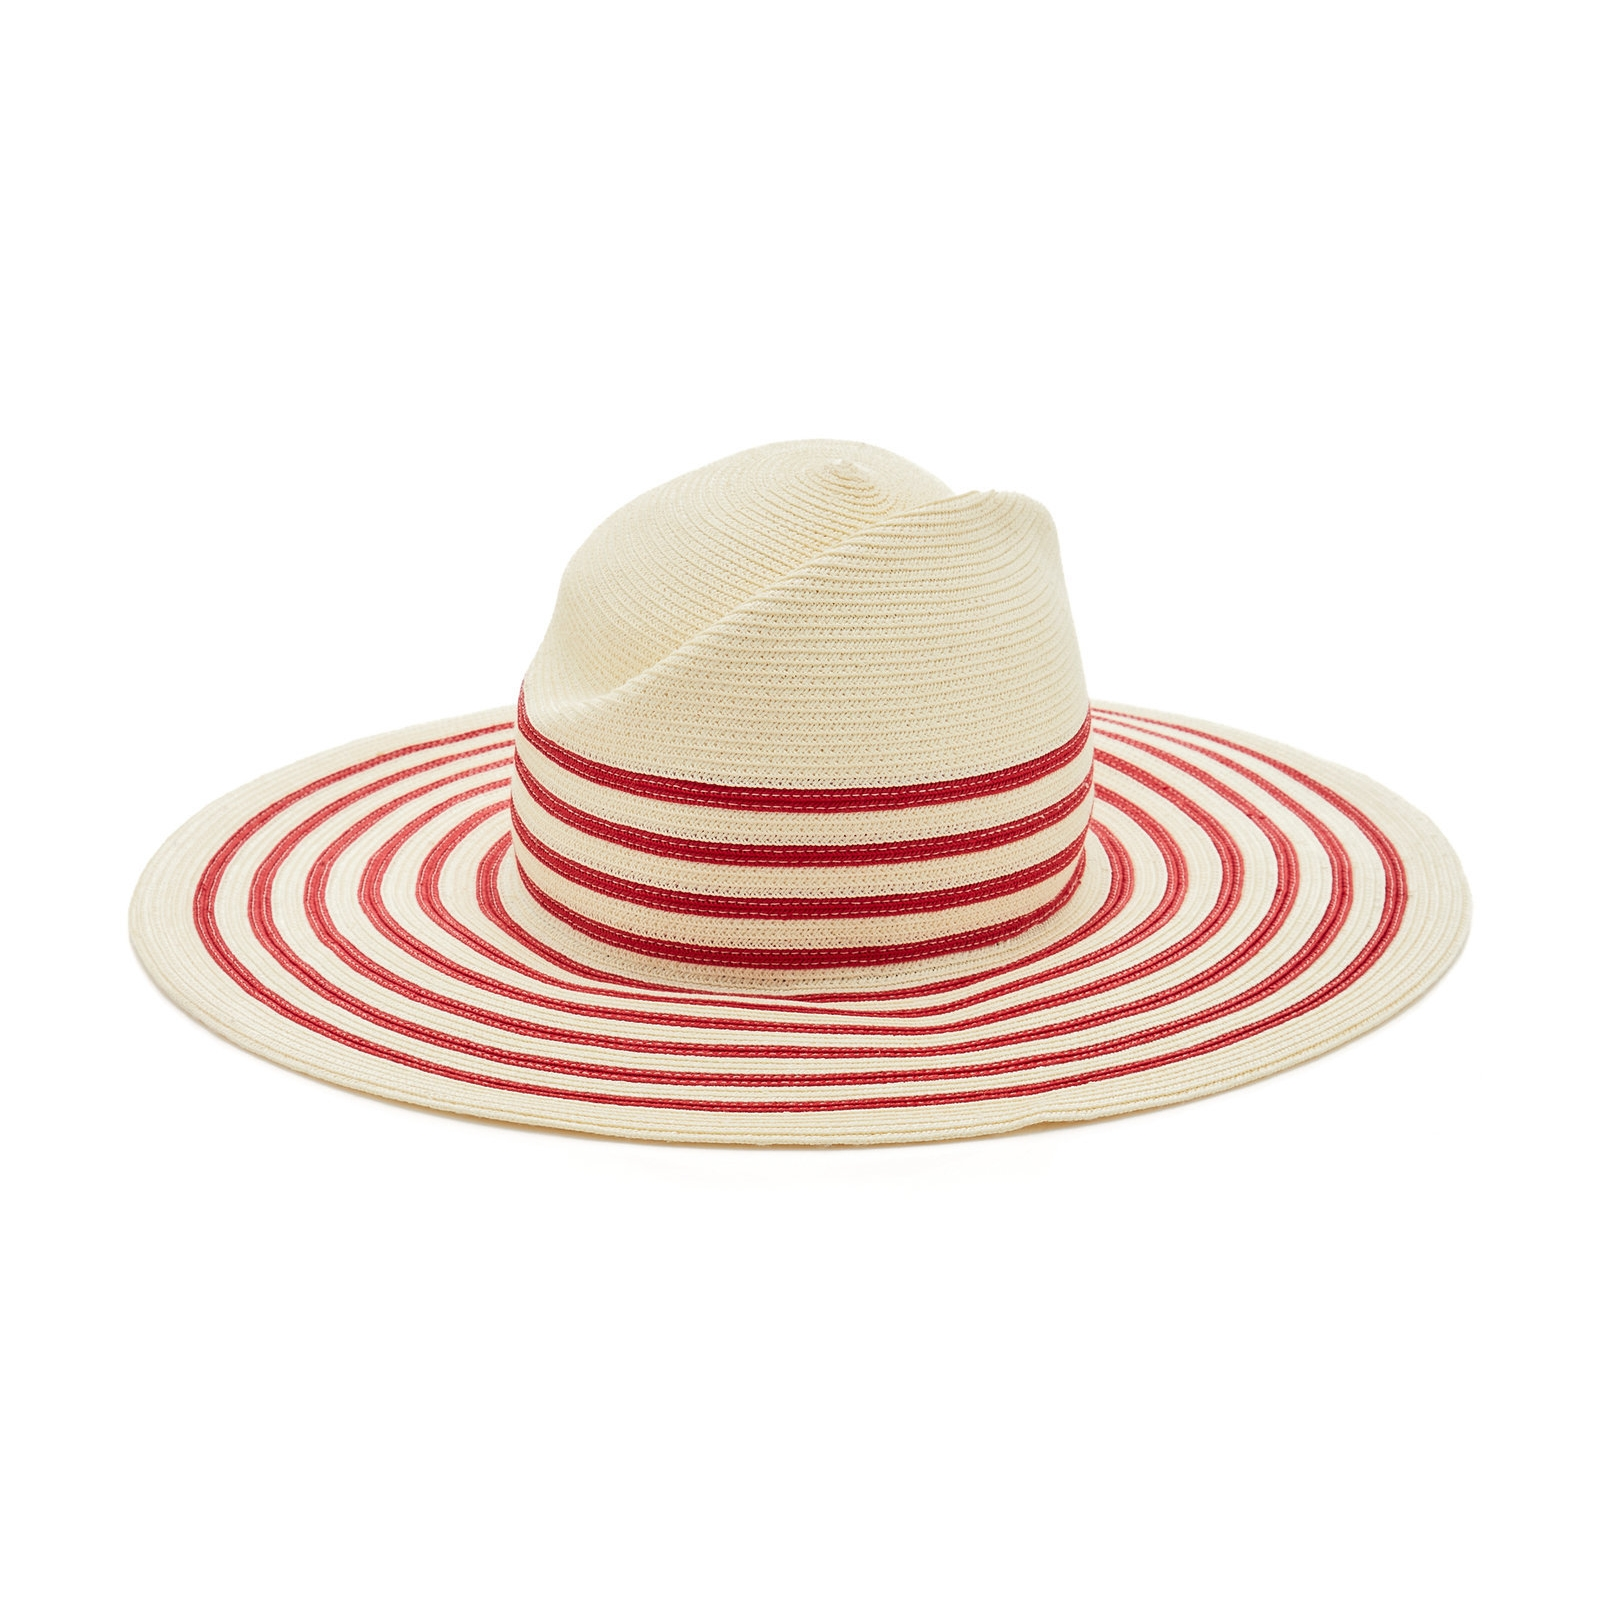 large_yestadt-millinery-red-breton-striped-straw-sunhat.jpg